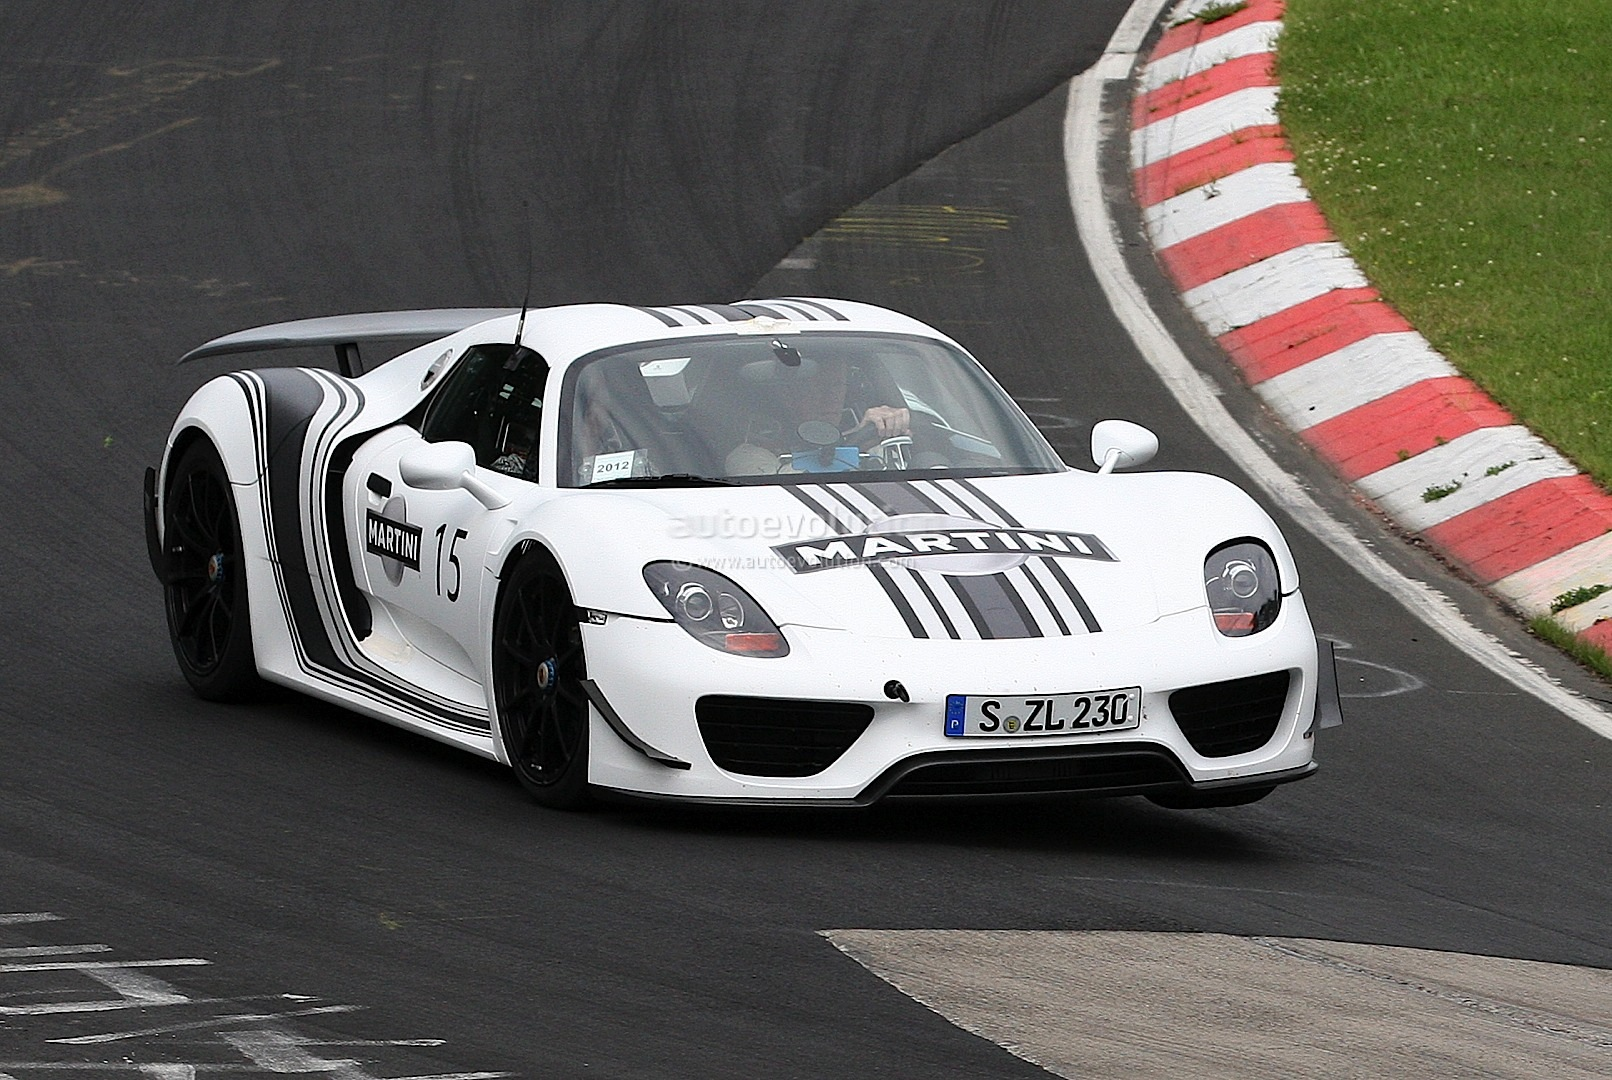 Spyshots Porsche 918 Spyder In Martini Racing Stripes